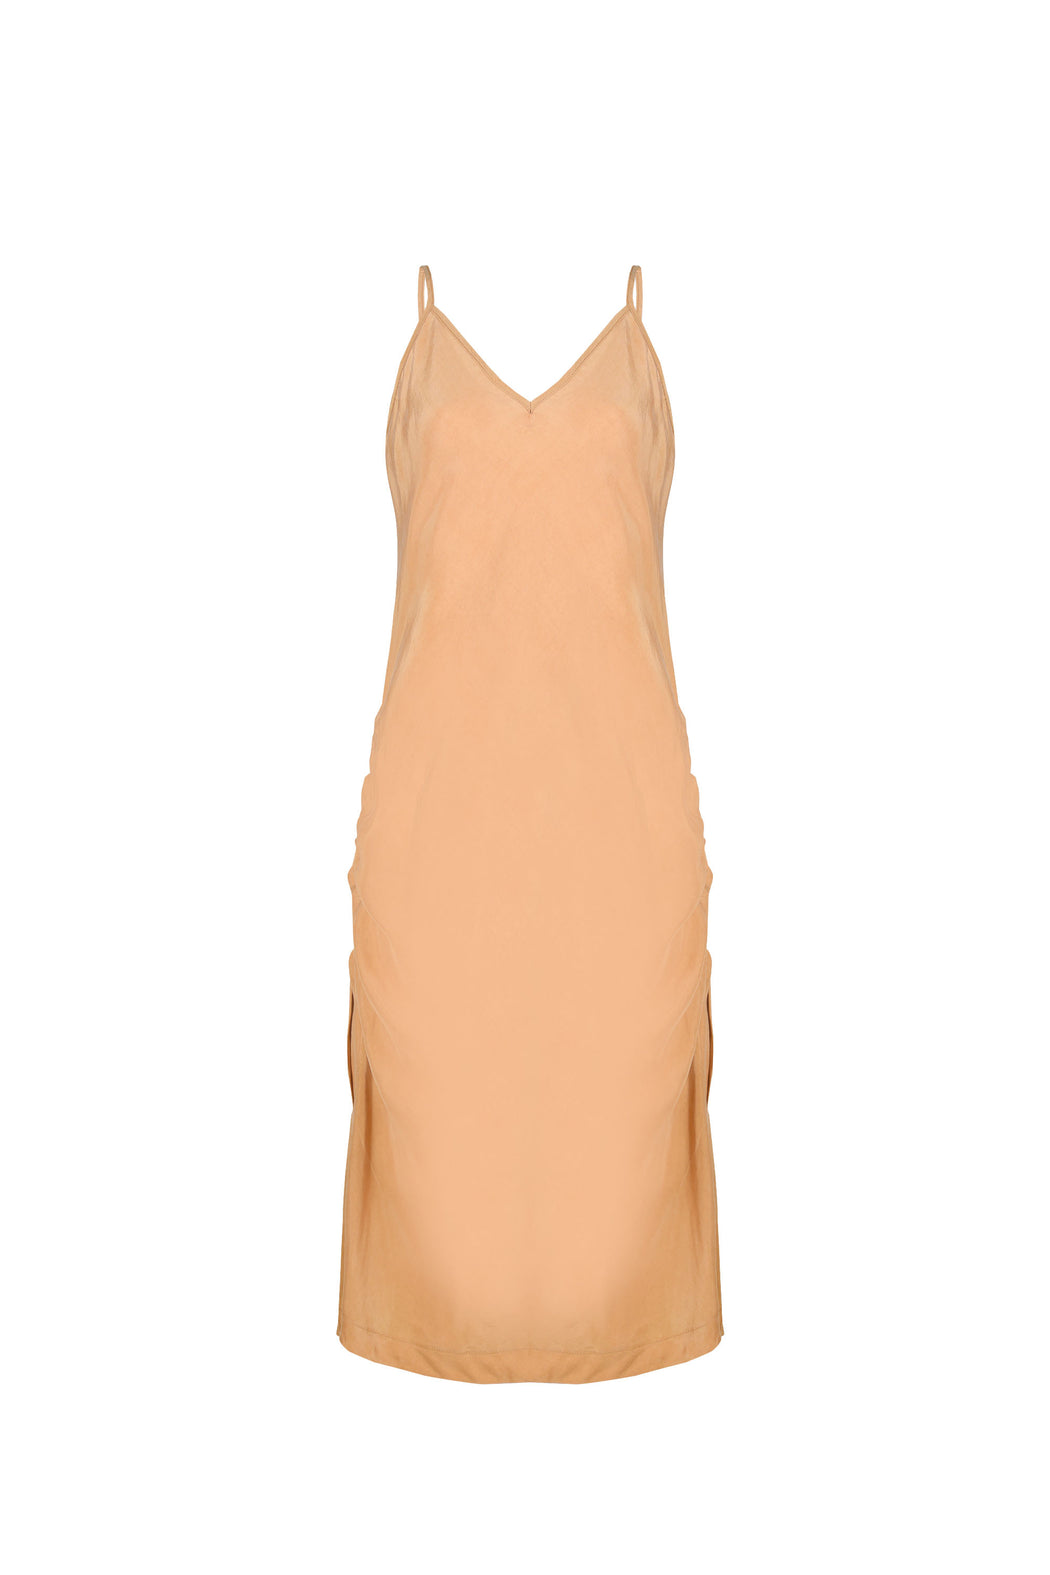 Women Cupro Sleeveless Dress, Both-side Adjusted, Gold